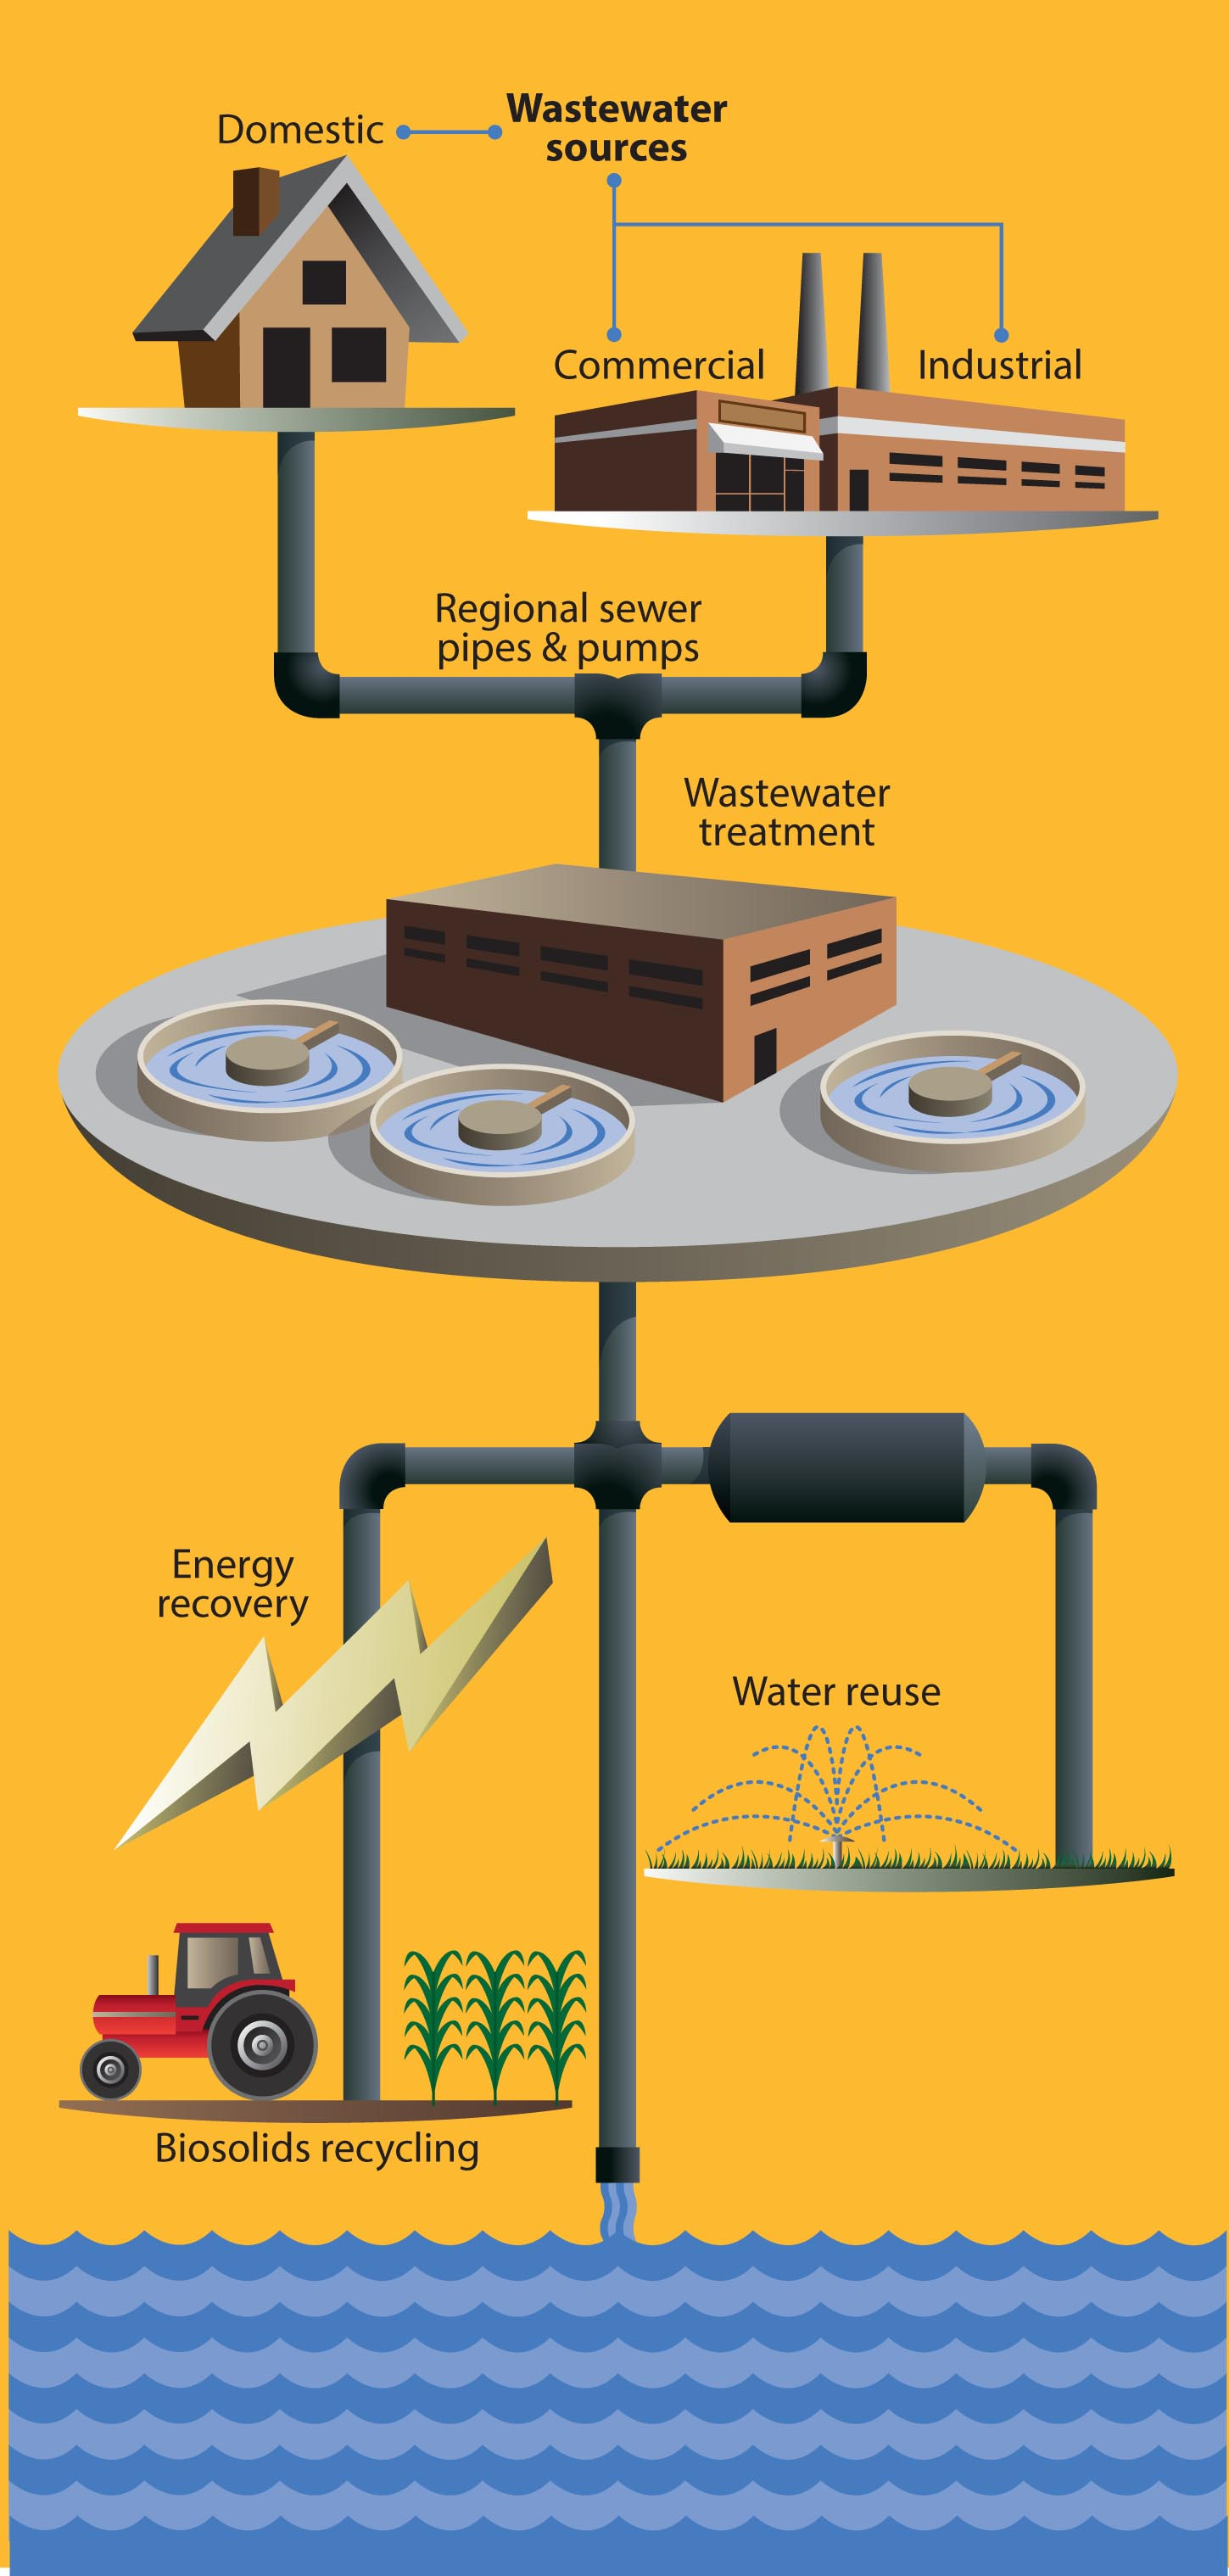 Wastewater Illustration: Courtesy of Association of Washington Cities